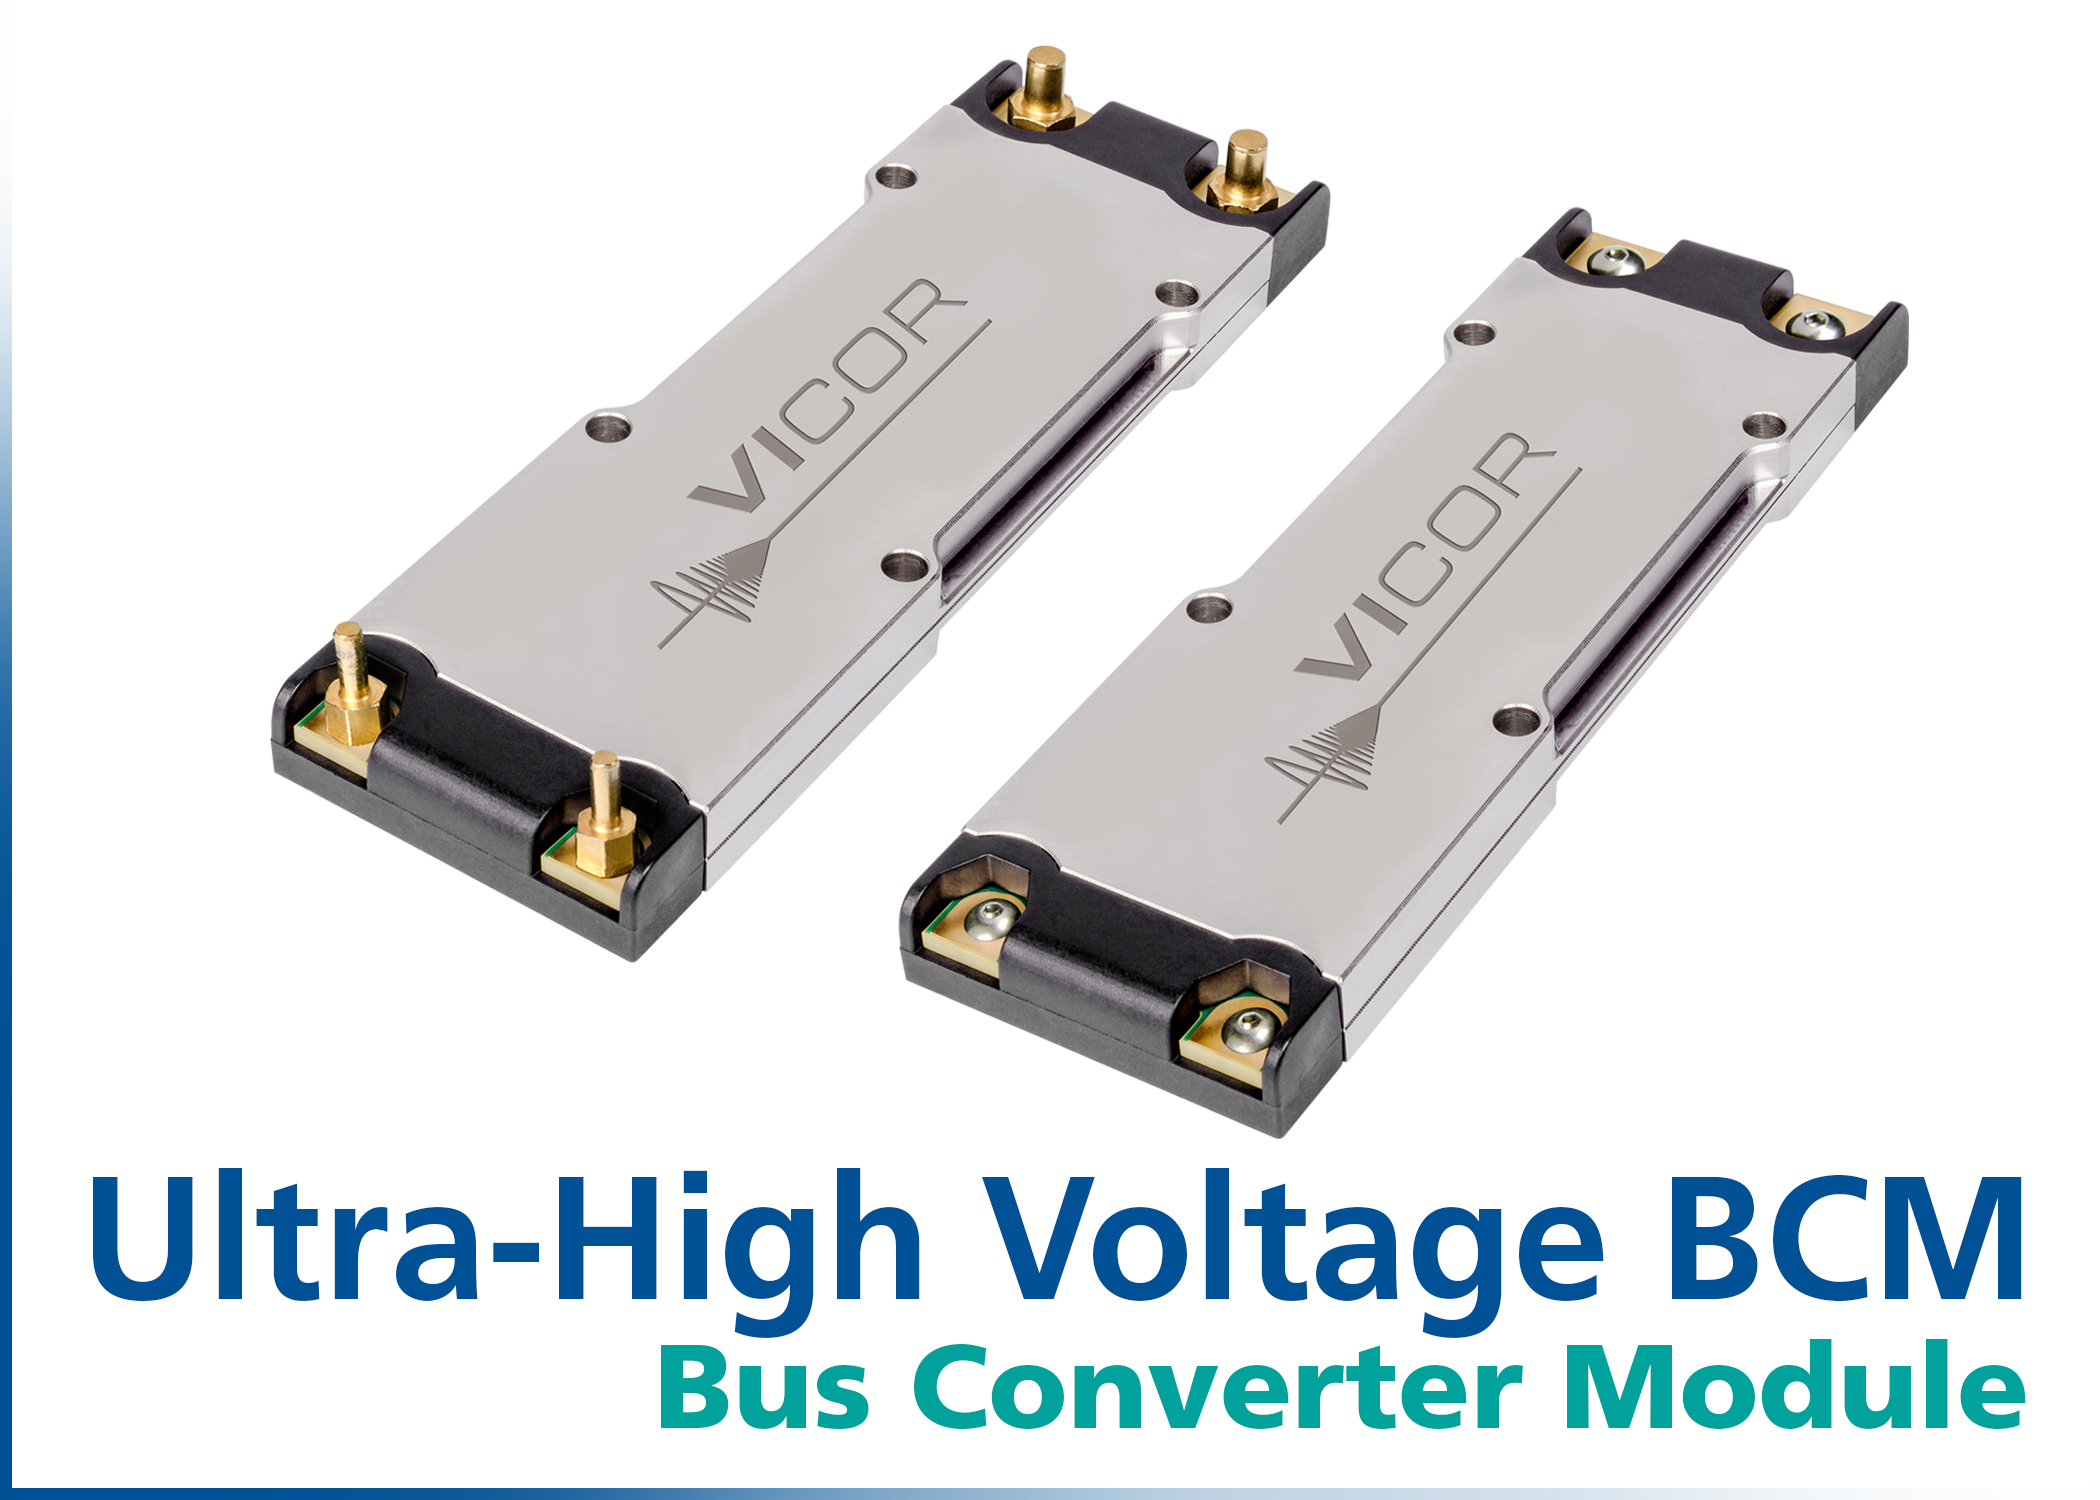 Ultra-High-Voltage Bus Converter Offers a Power Level of 1.75 kW and Peak Efficiency of 97%